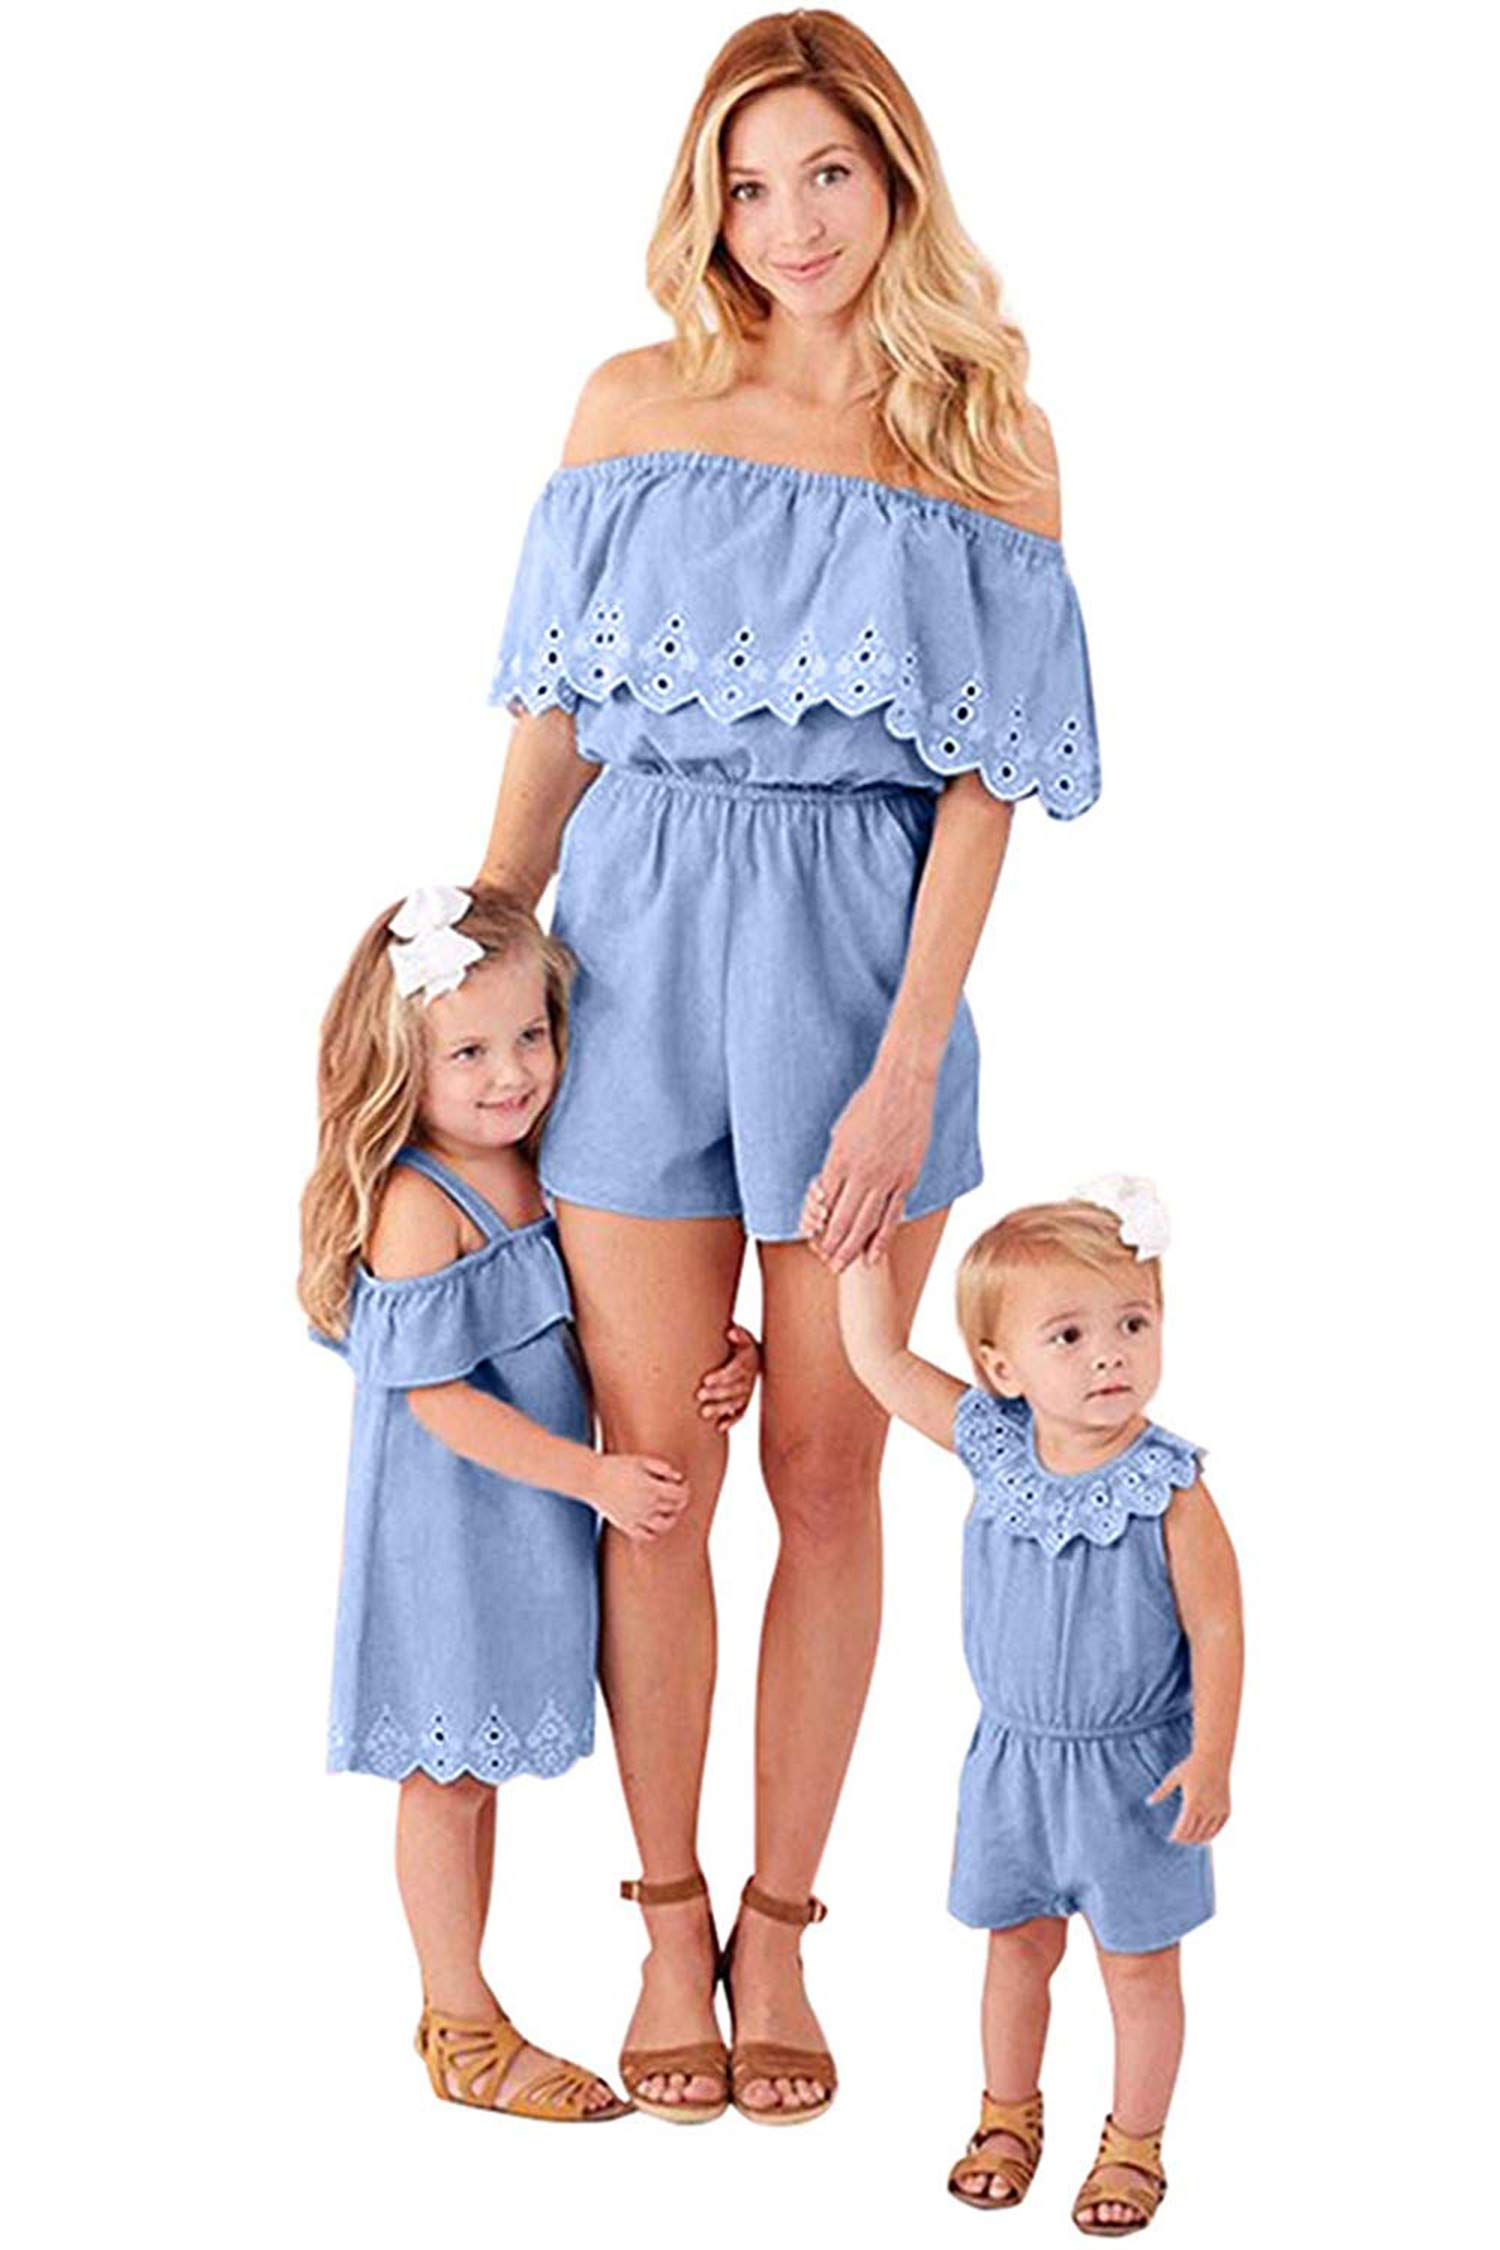 Family Matching Summer Denim Outfits Mommy and Me Off Shoulder Short Sleeve Loose Fit Short Romper Dress (Blue, Mom S) by doublebabyjoy